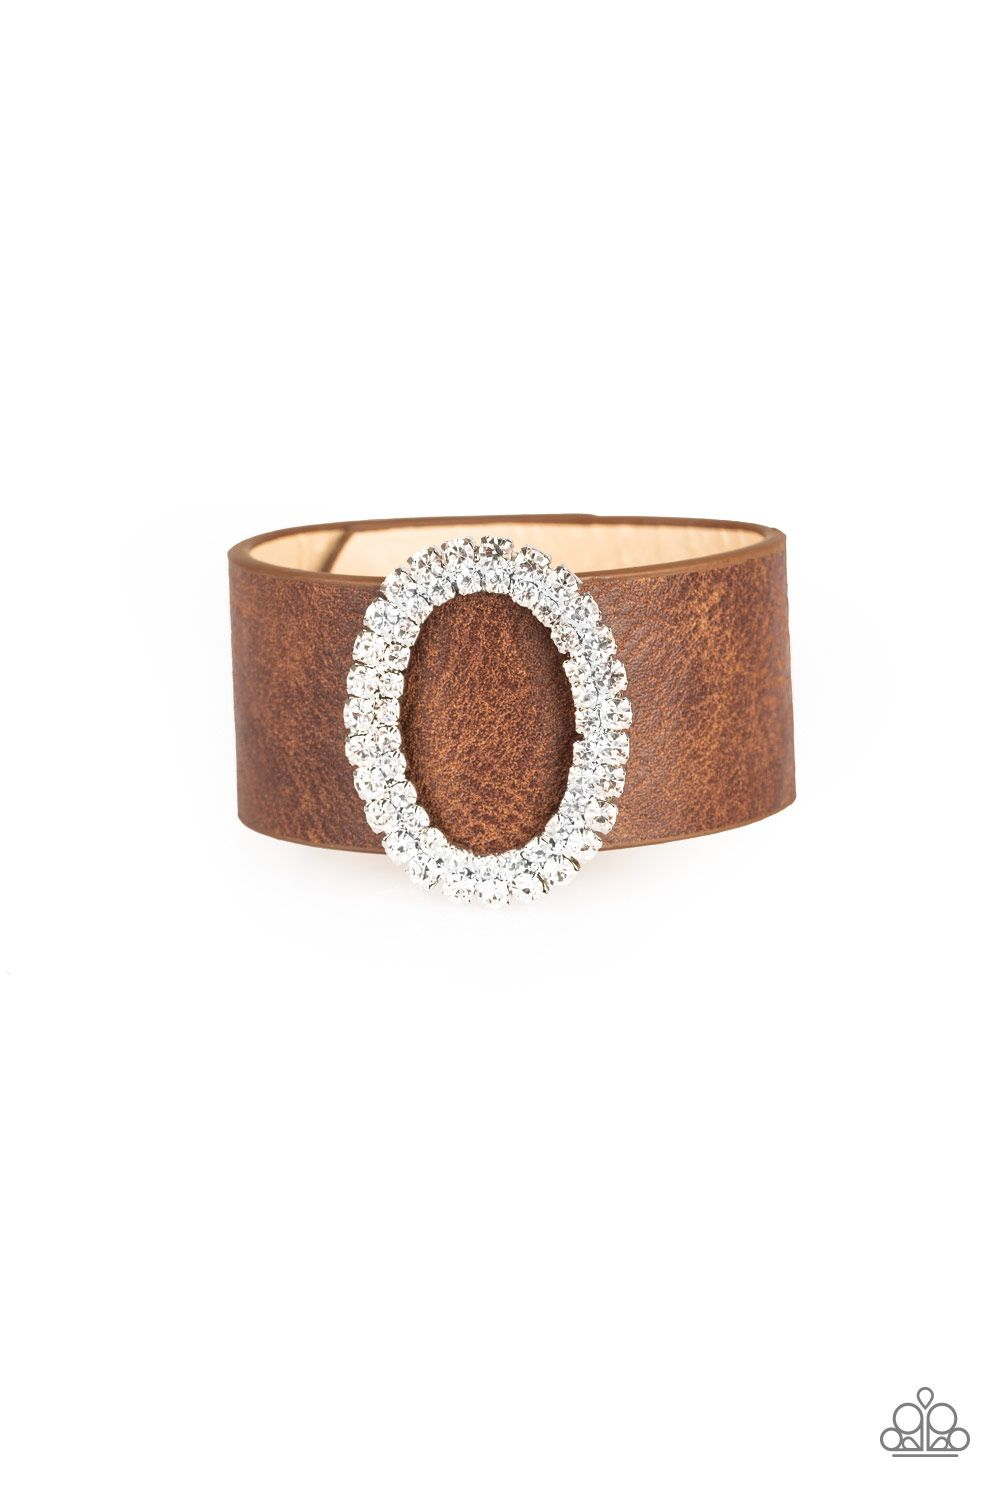 Center Stage Starlet Urban Brown Bracelet